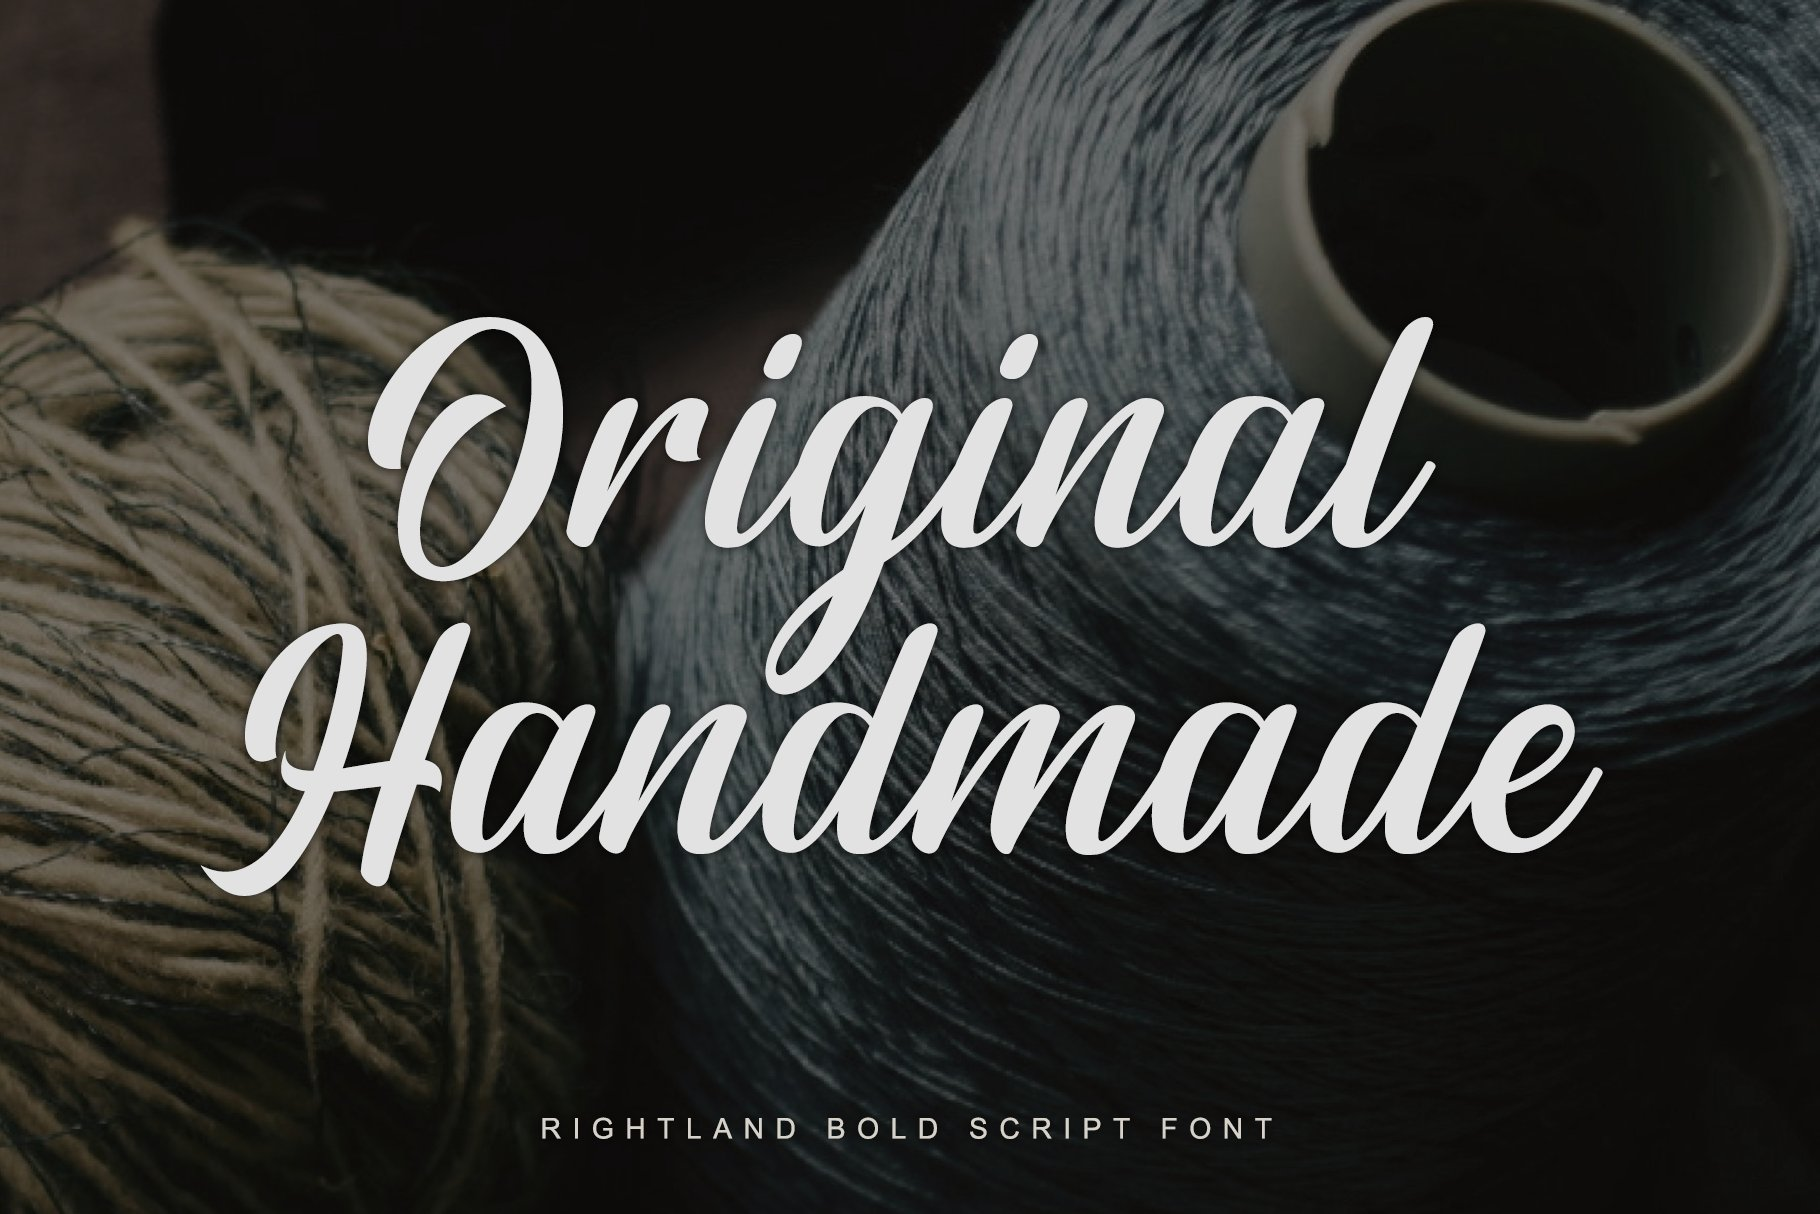 Rightland - Modern Bold Script example image 2